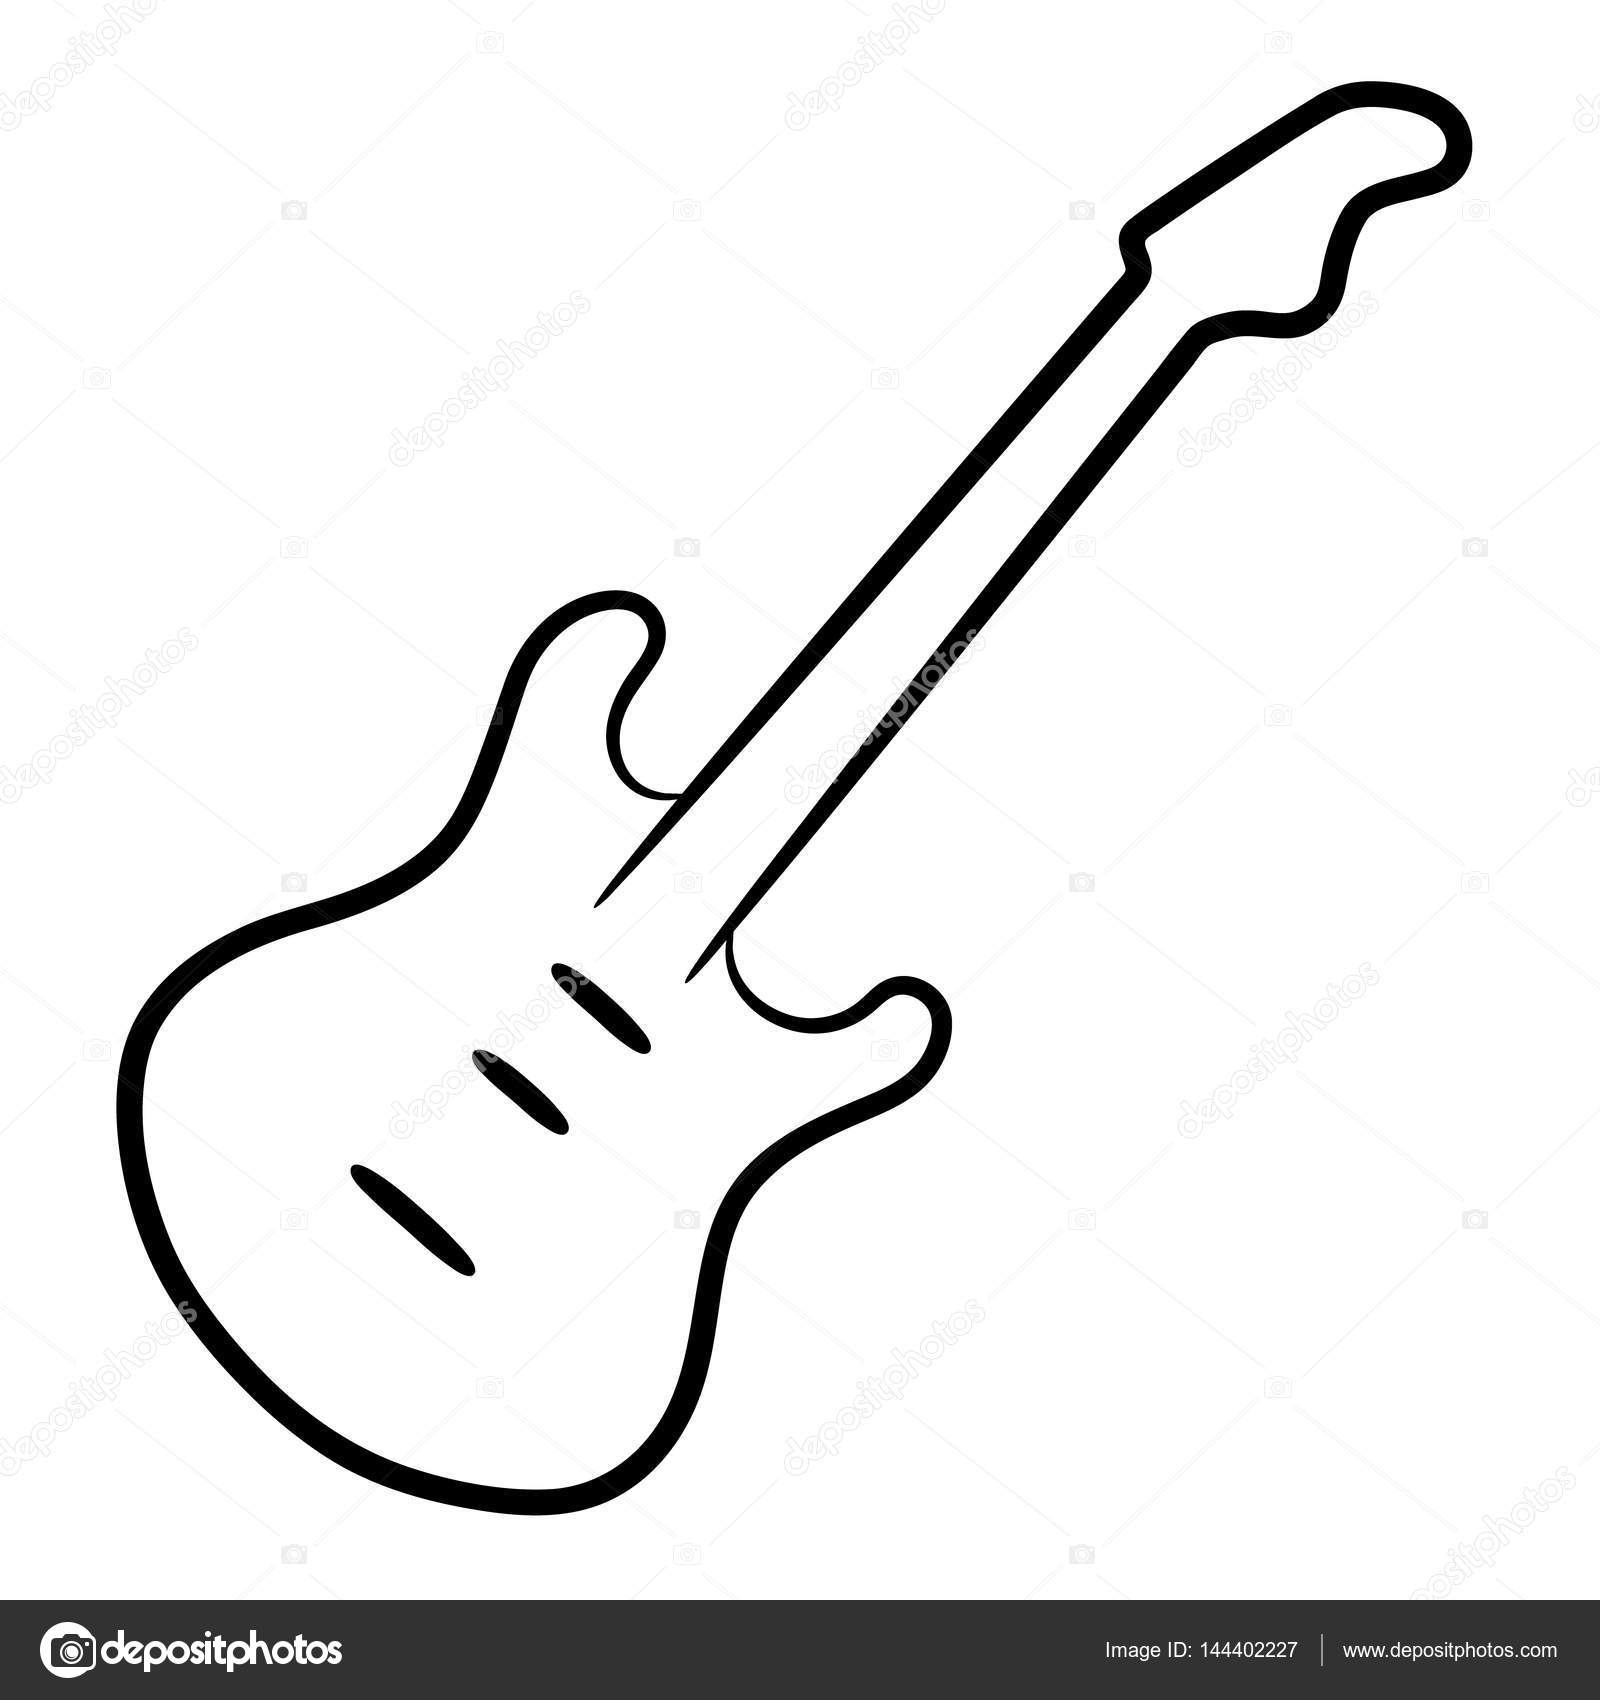 Electric Guitar Black Contour Lines On The White